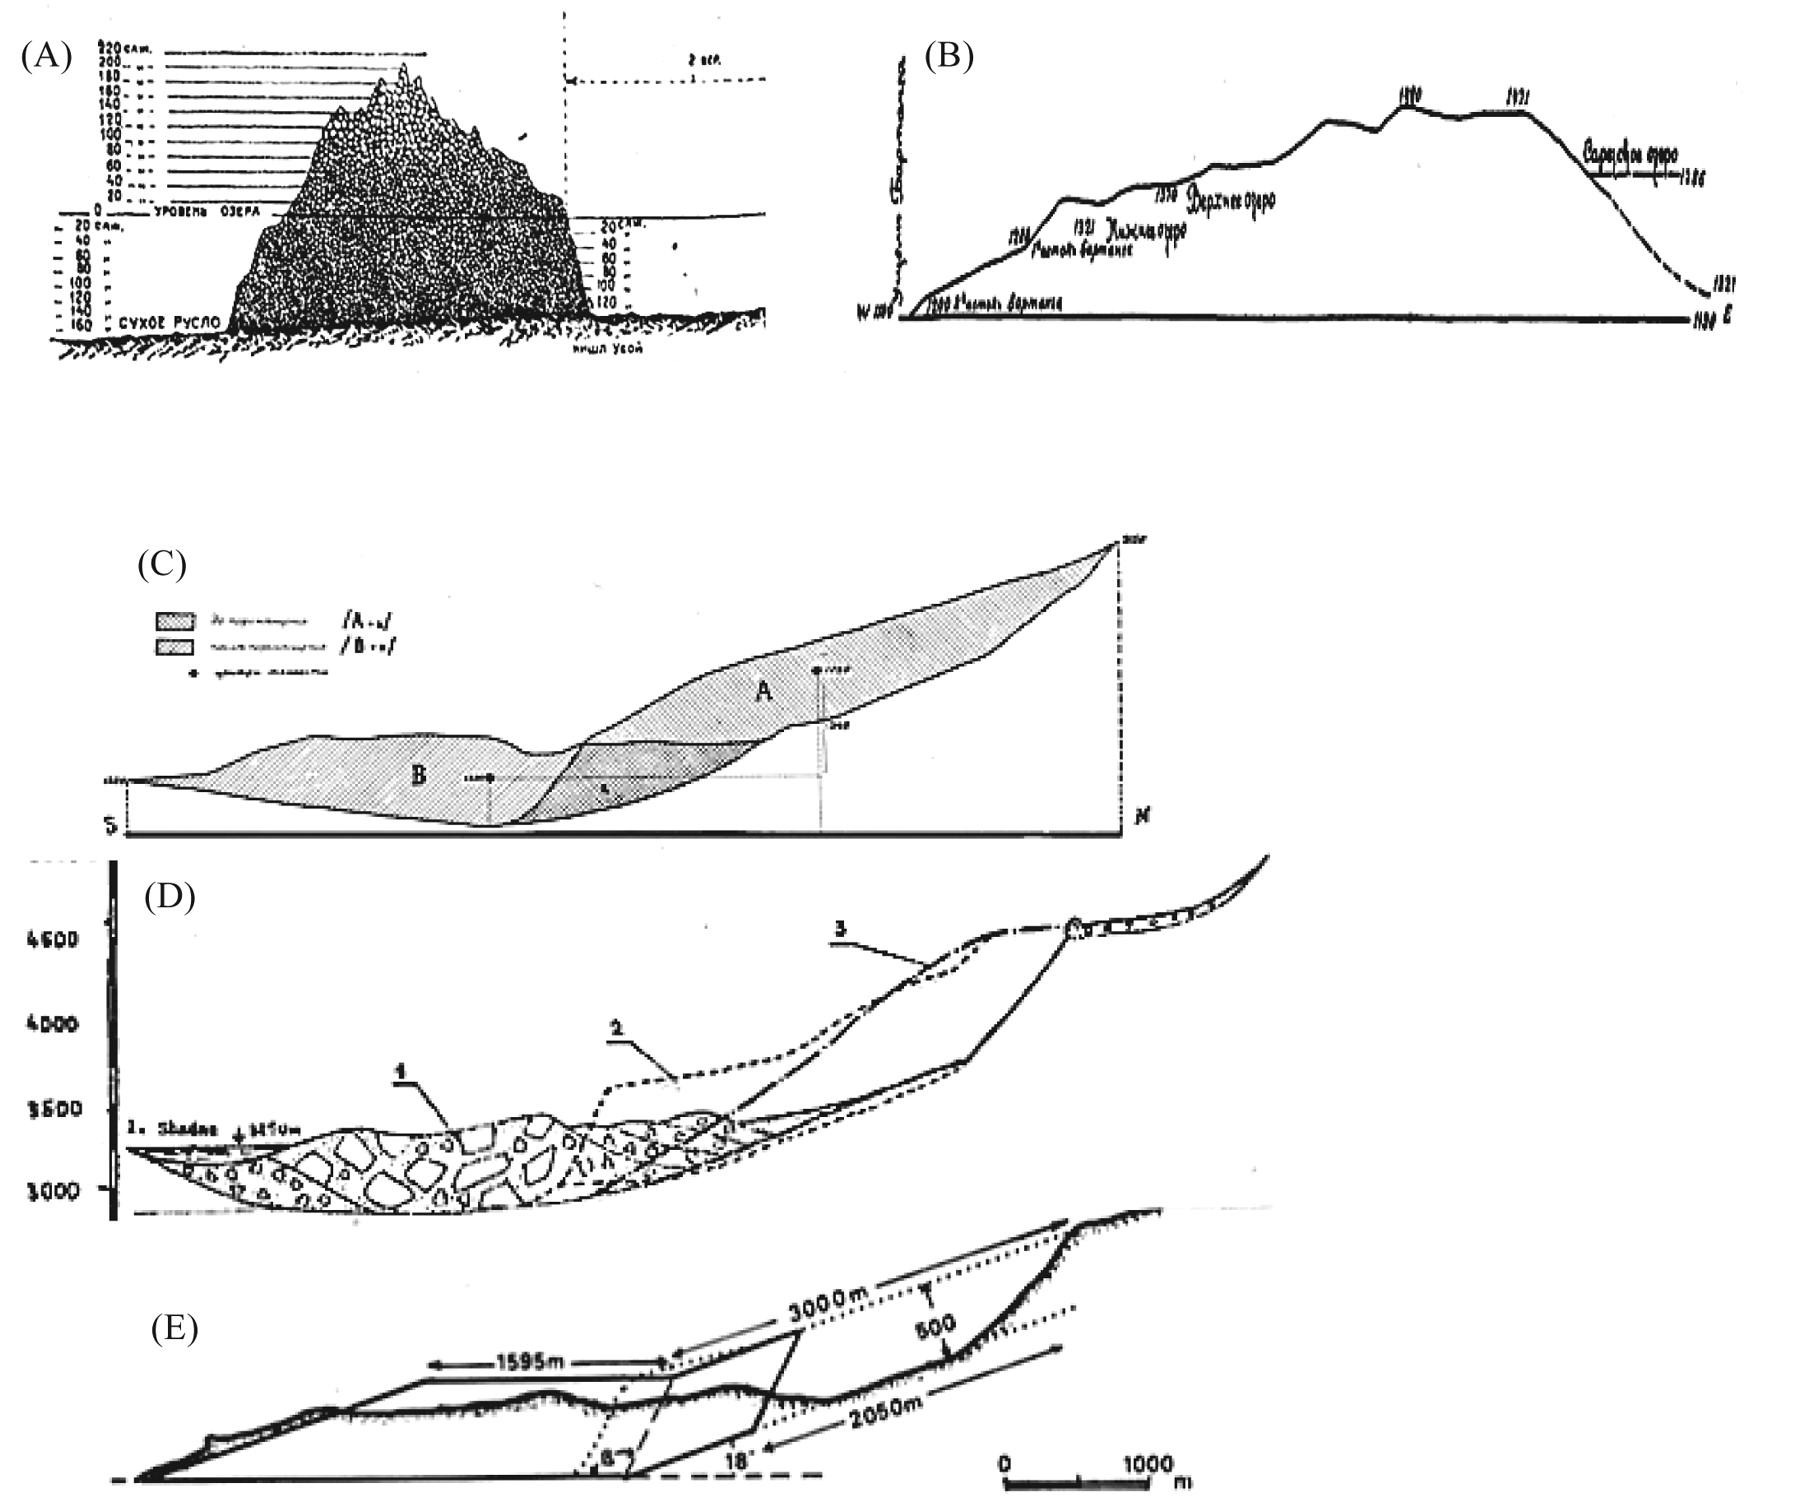 Sarez Pamir Earthquake And Landslide Of 18 February 1911 Drawing Force Diagrams Worksheet Answers Furthermore Rock Cycle View Largedownload Slide